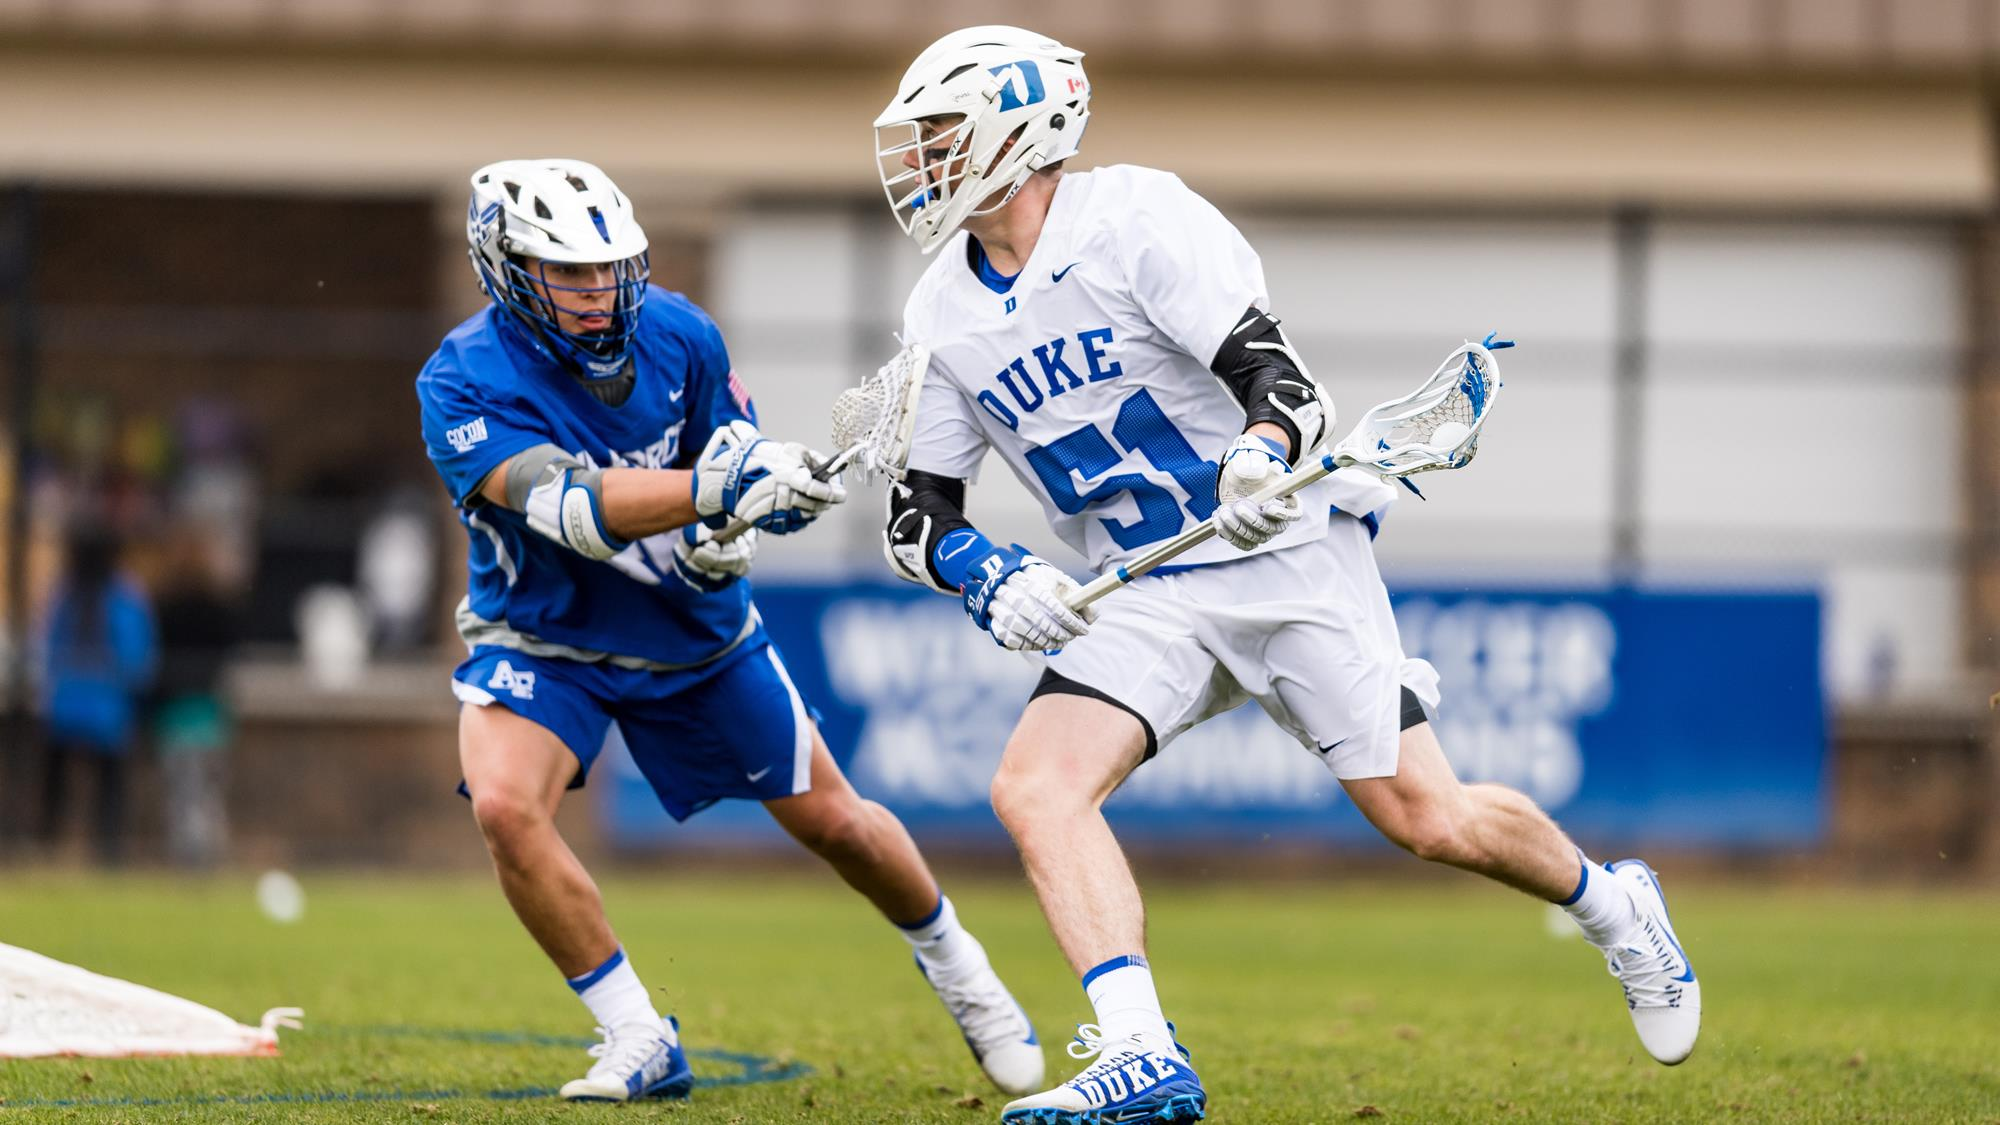 Dyson Williams - 2020 - Men's Lacrosse - Duke University